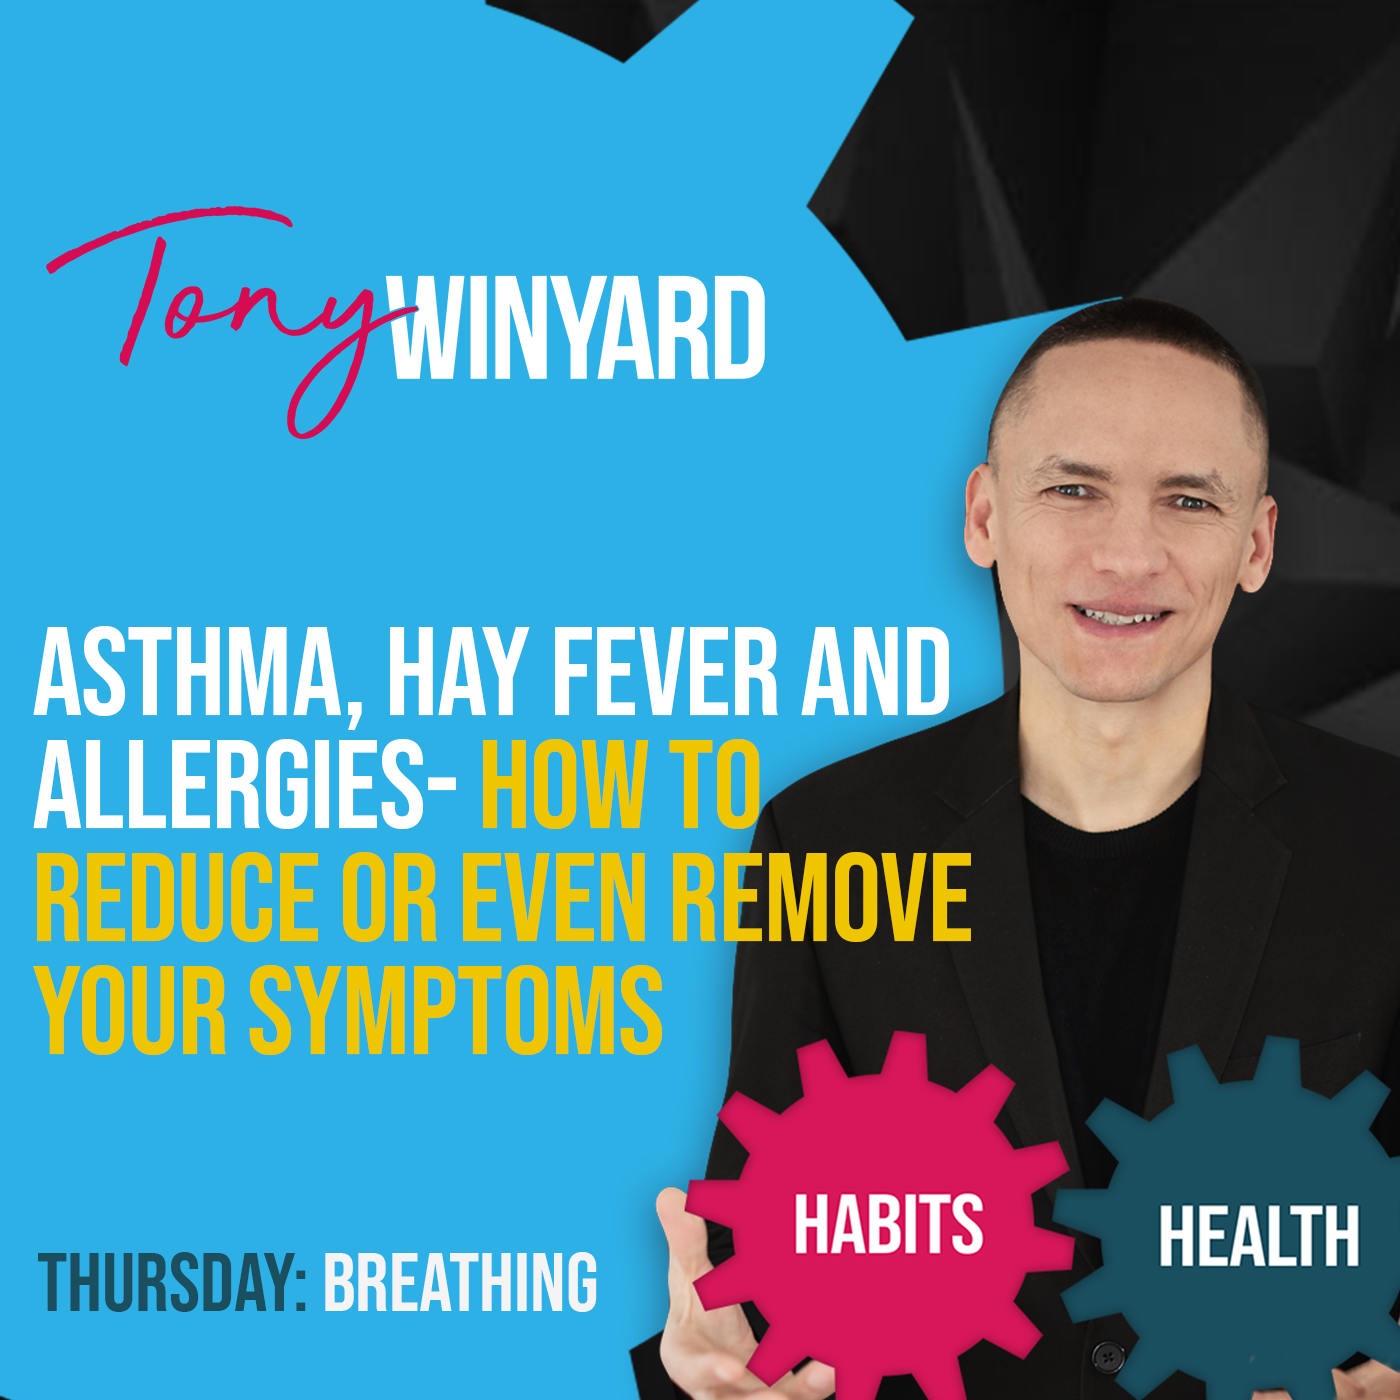 Asthma, hay fever and allergies